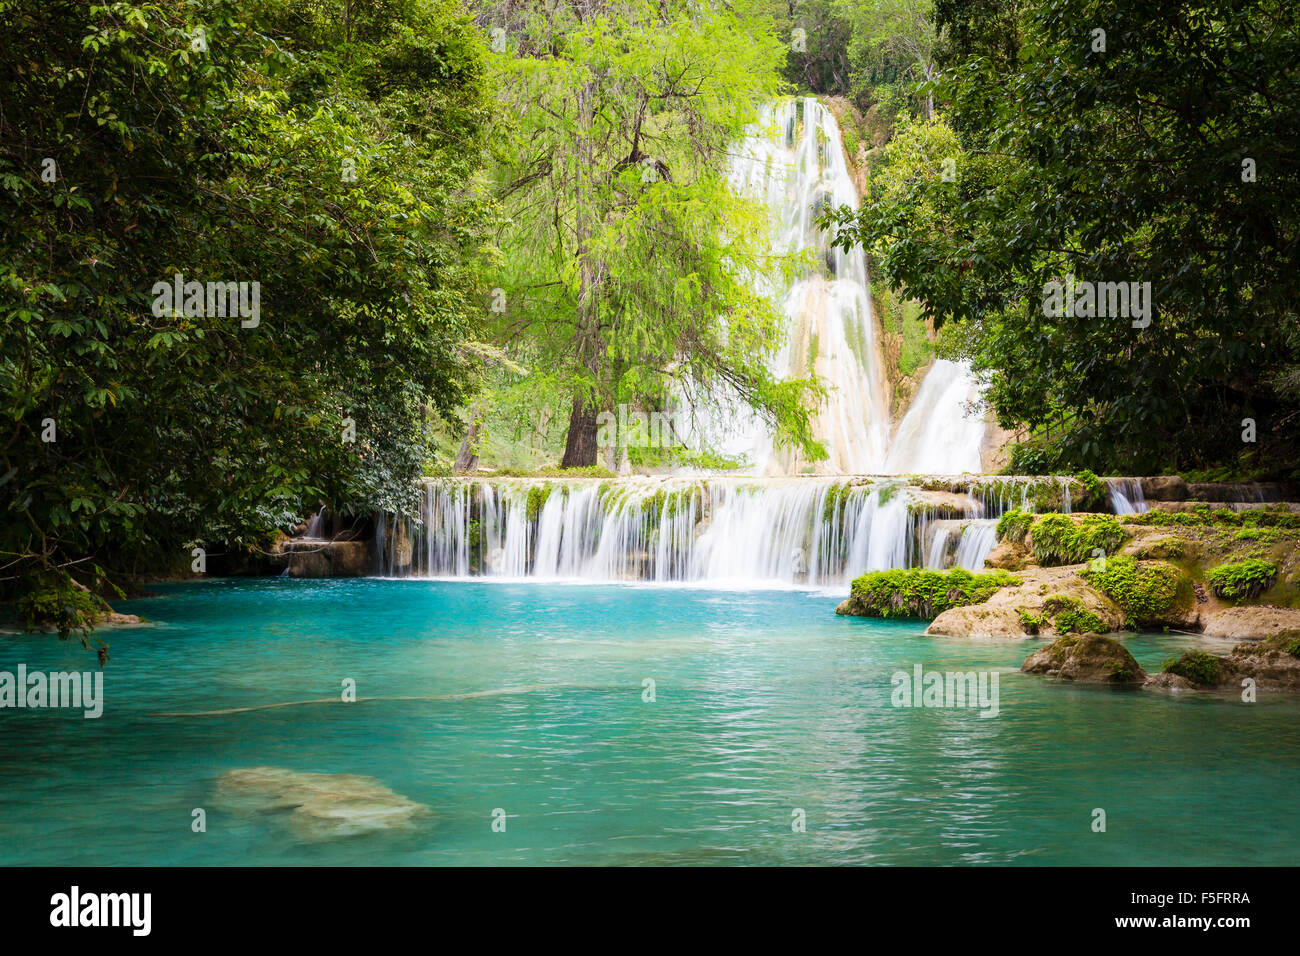 Huasteca High Resolution Stock Photography And Images Alamy